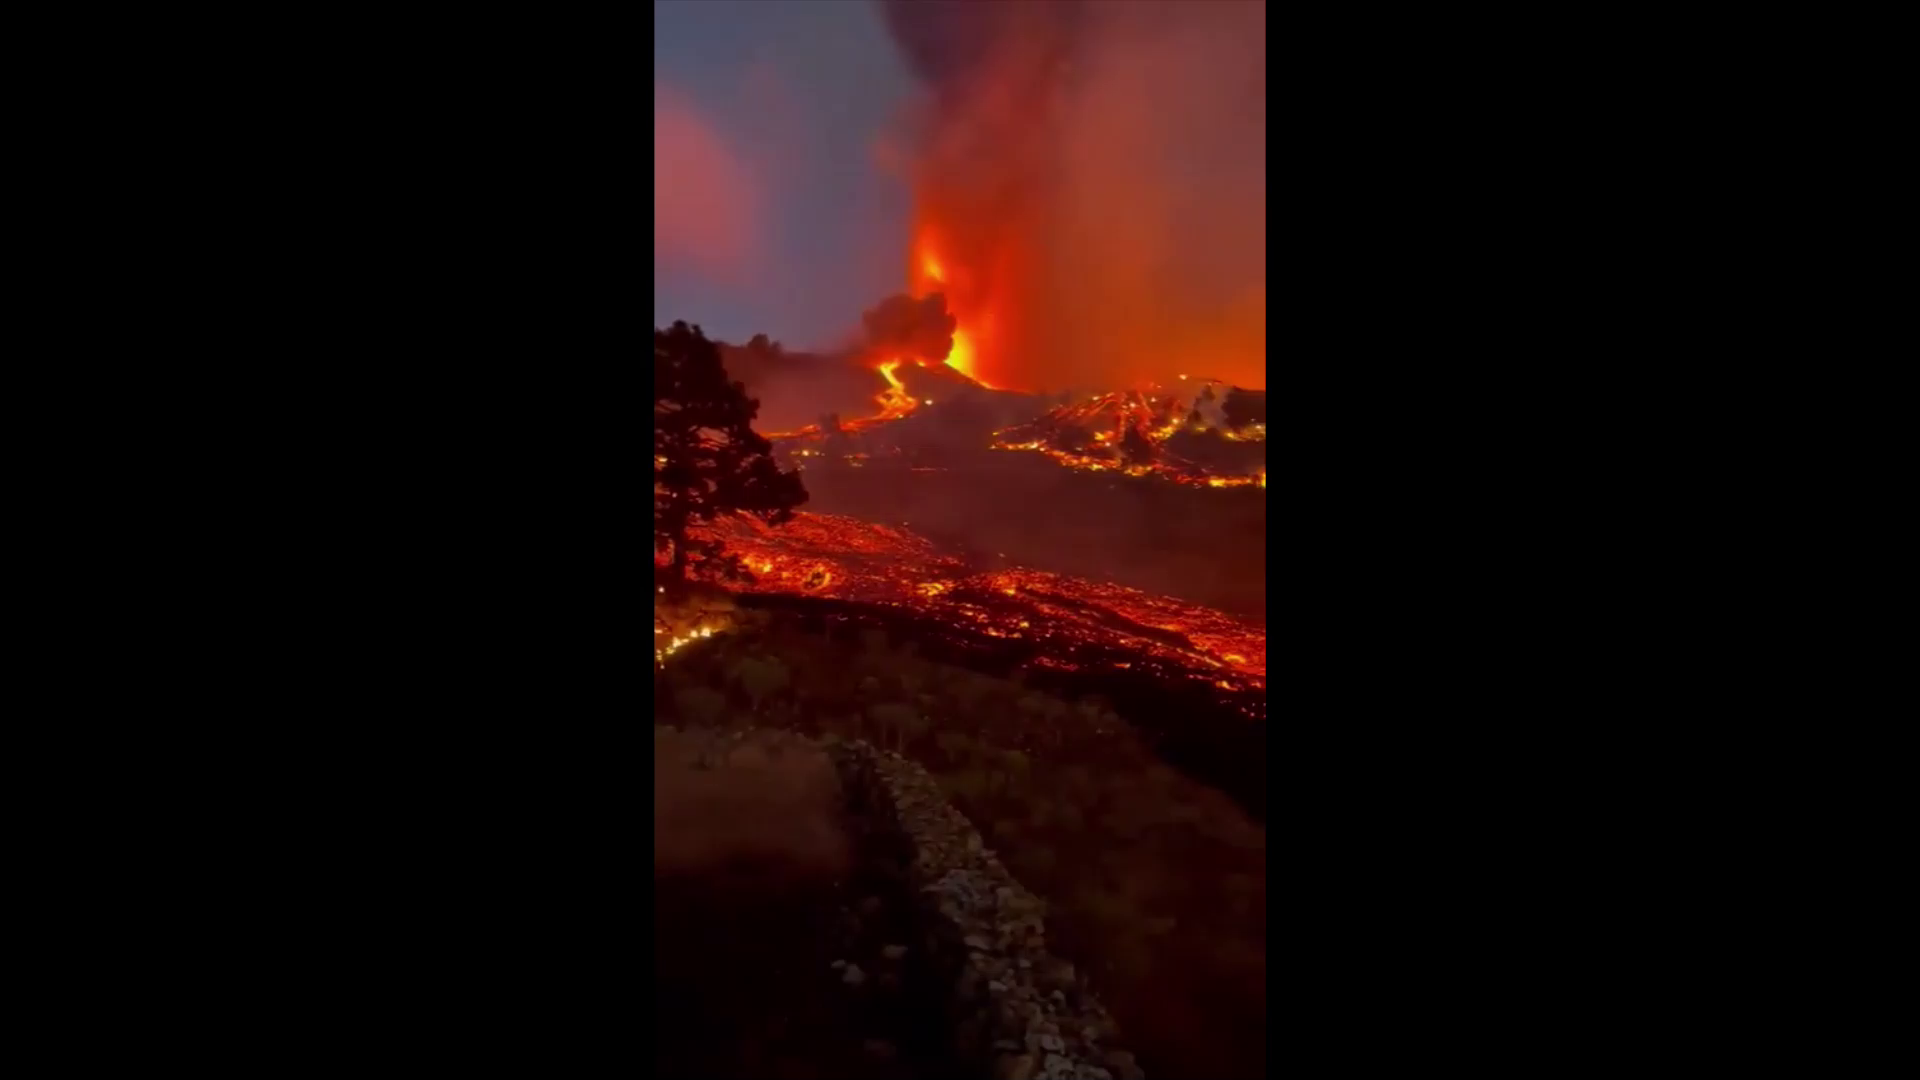 some weather we're having #8 - Recent footage of the Lava flow from La Palma, Spain's Canary islands